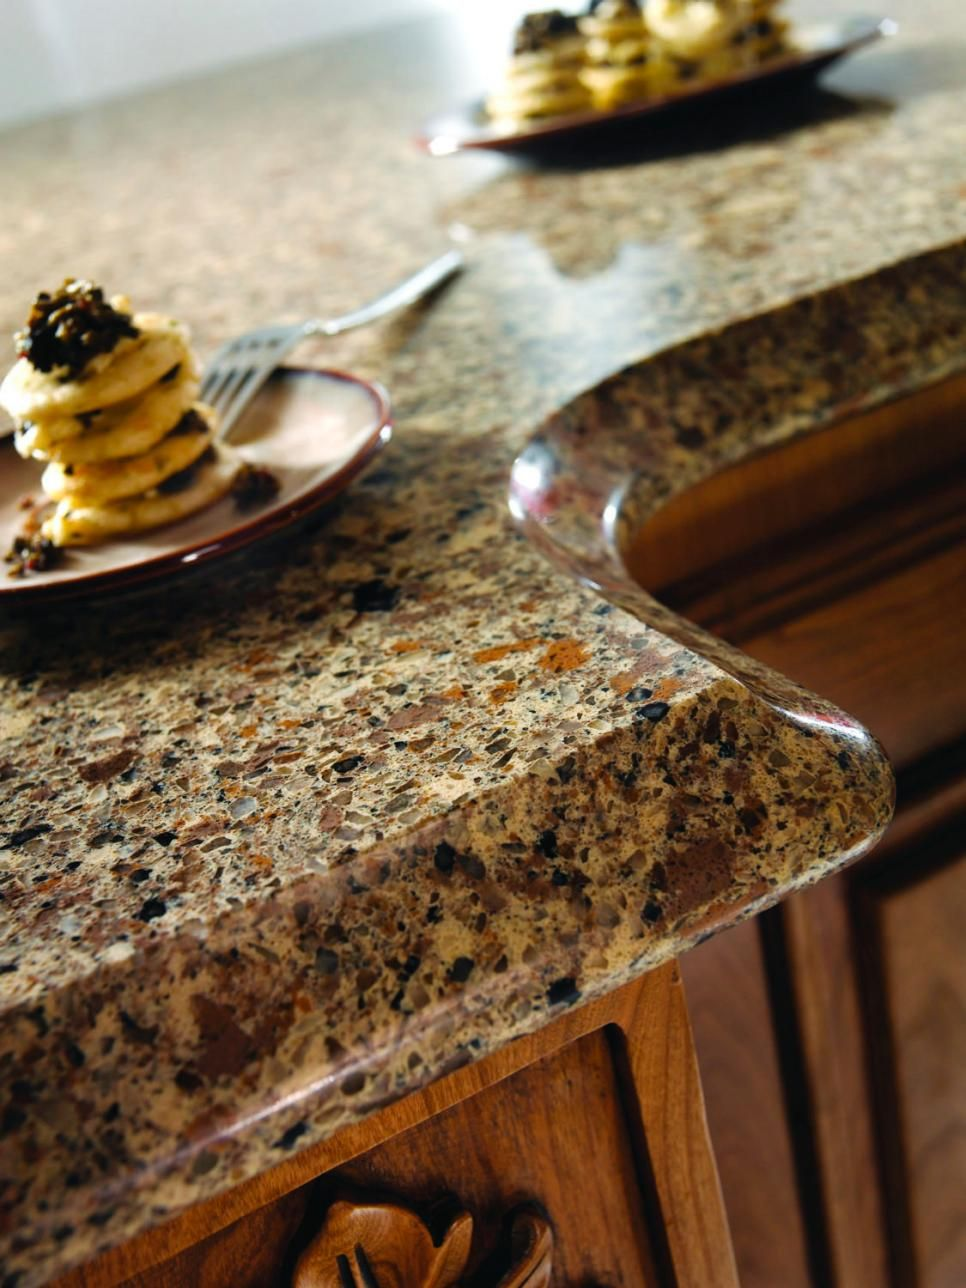 Mid Range: Engineered Stone Countertops Resilient And Aesthetically  Pleasing, Quartz Composite Countertops Offer The Natural Look Of Stone With  Enhanced ...